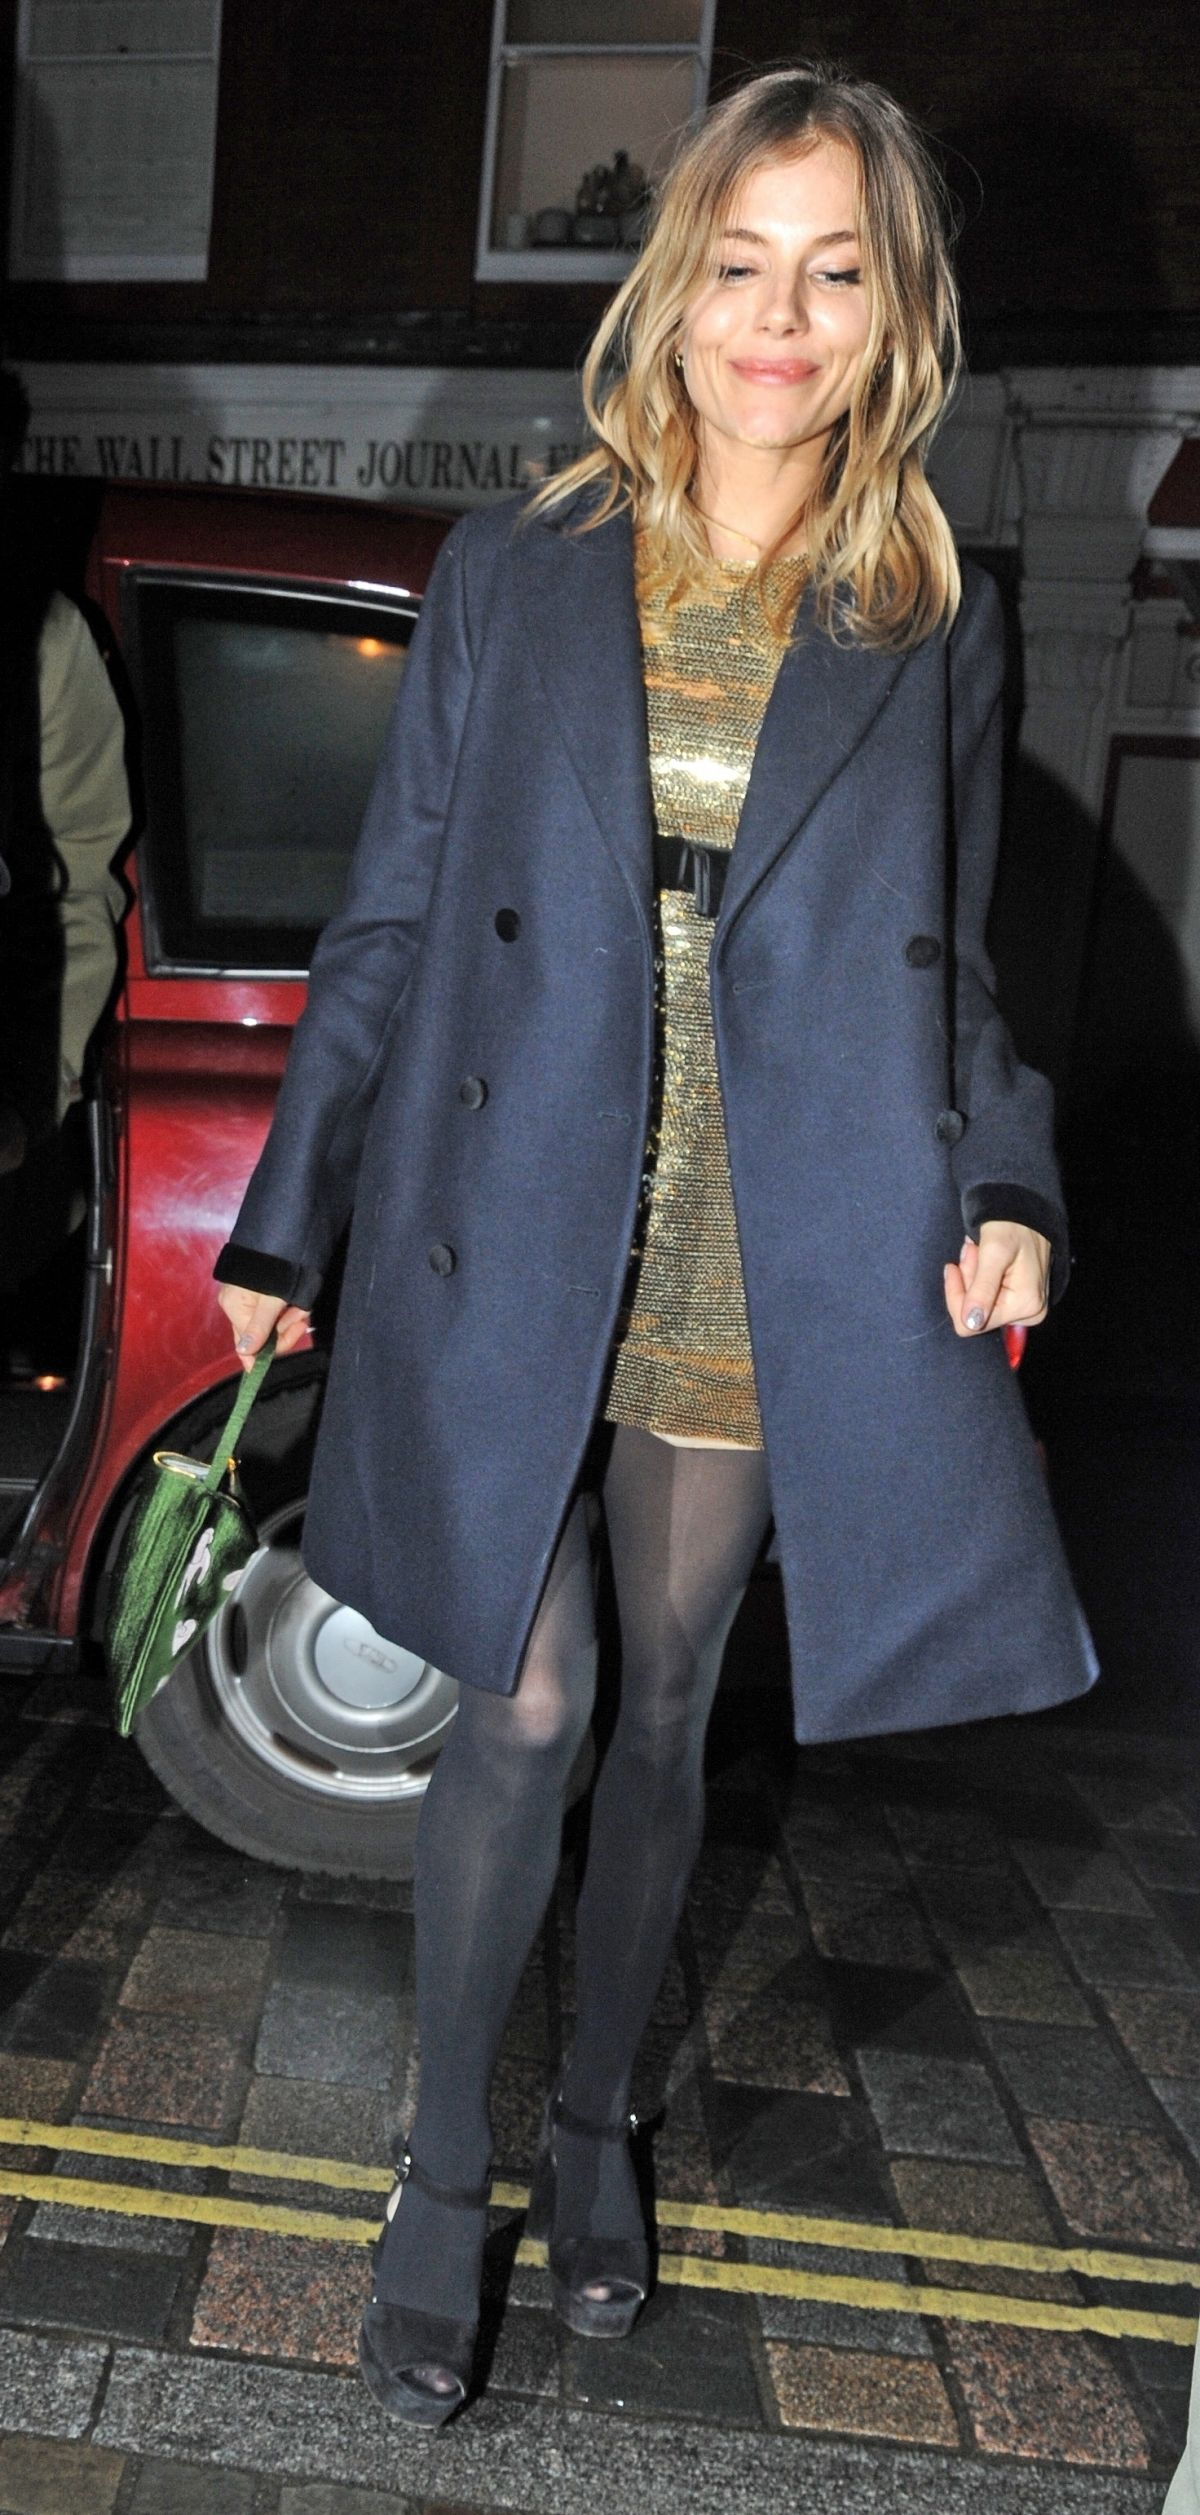 SIENNA MILLER at Chiltern Firehouse in London 12/19/2018